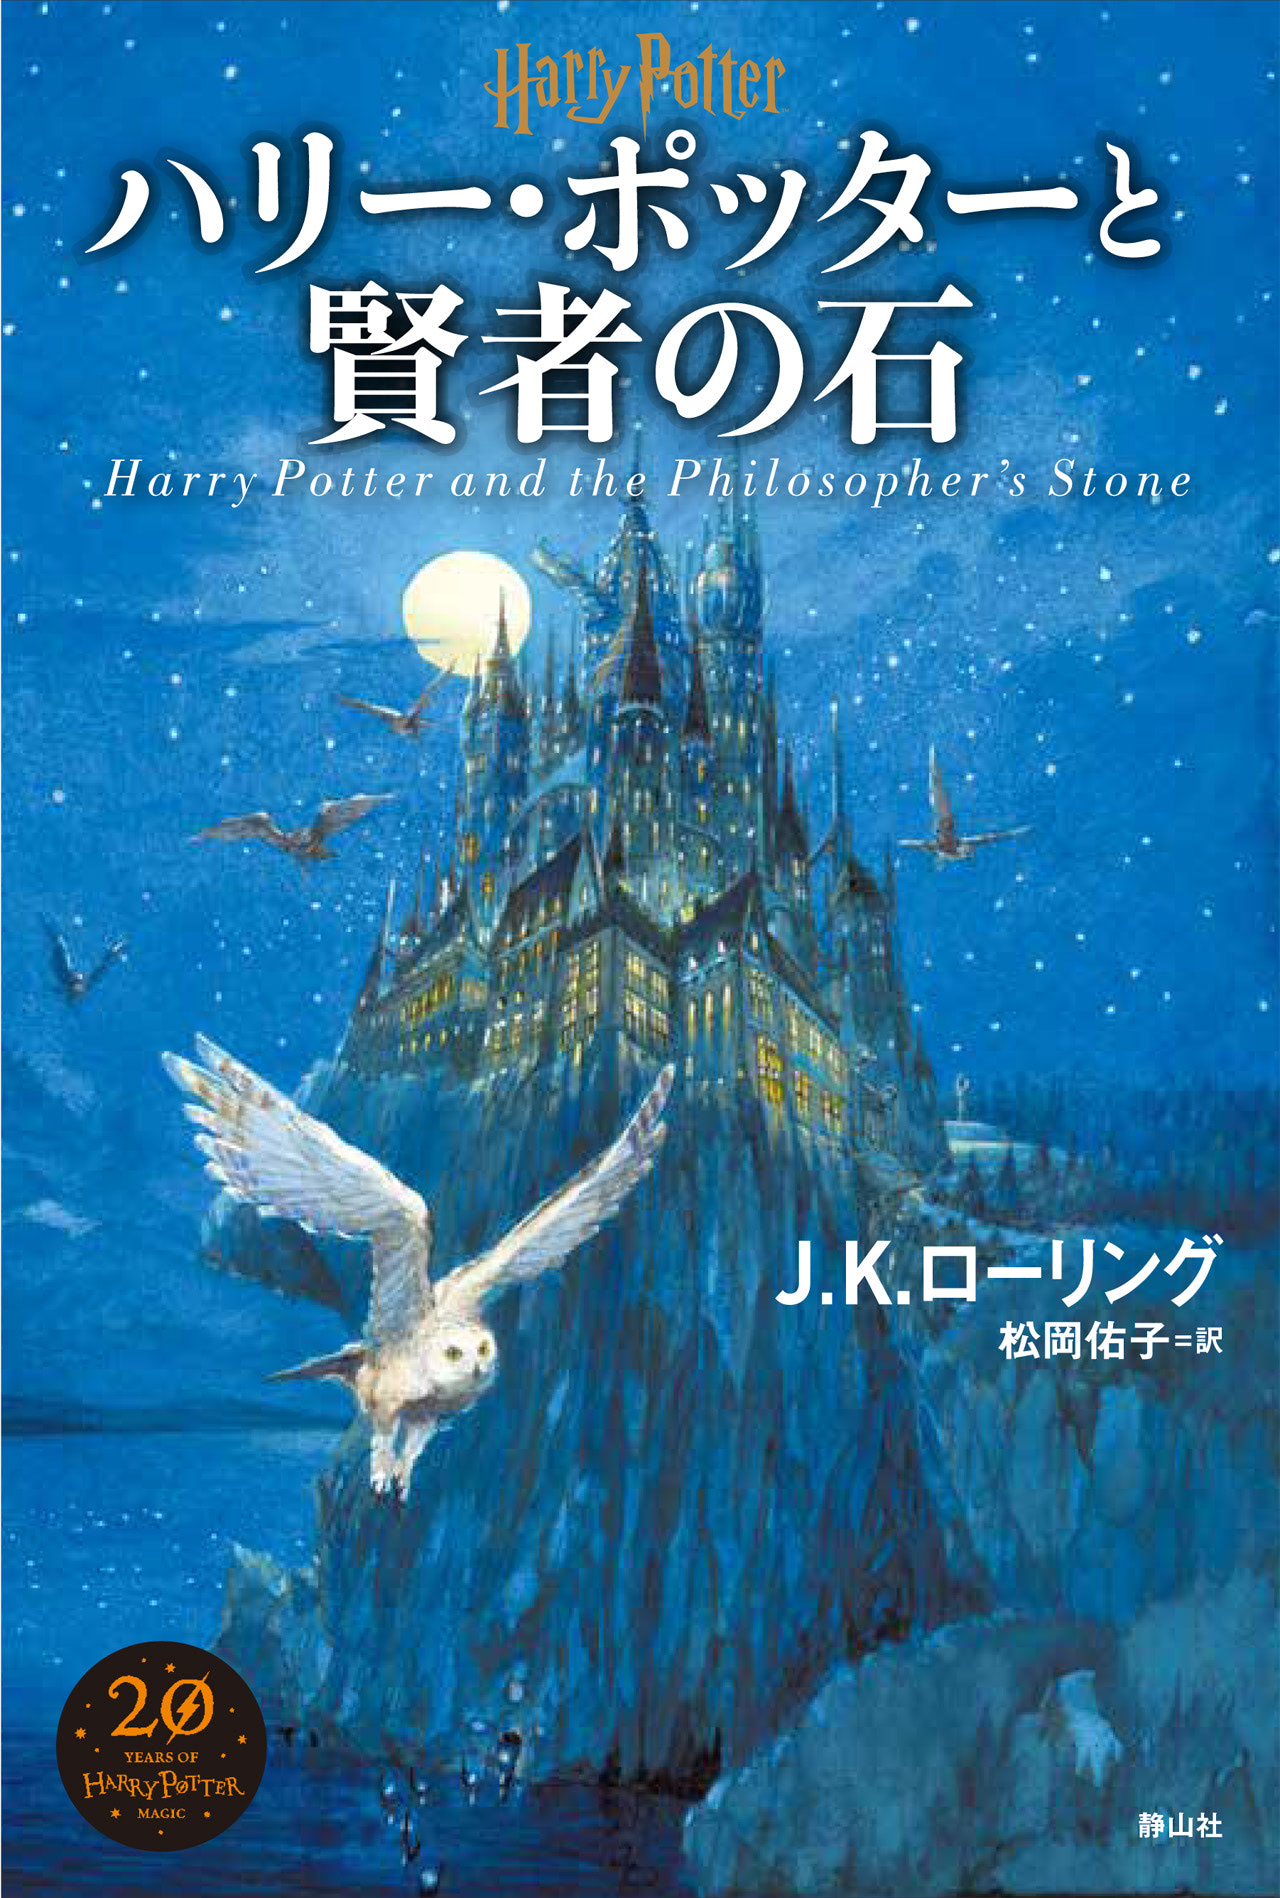 'Philosopher's Stone' Japanese 20th anniversary edition